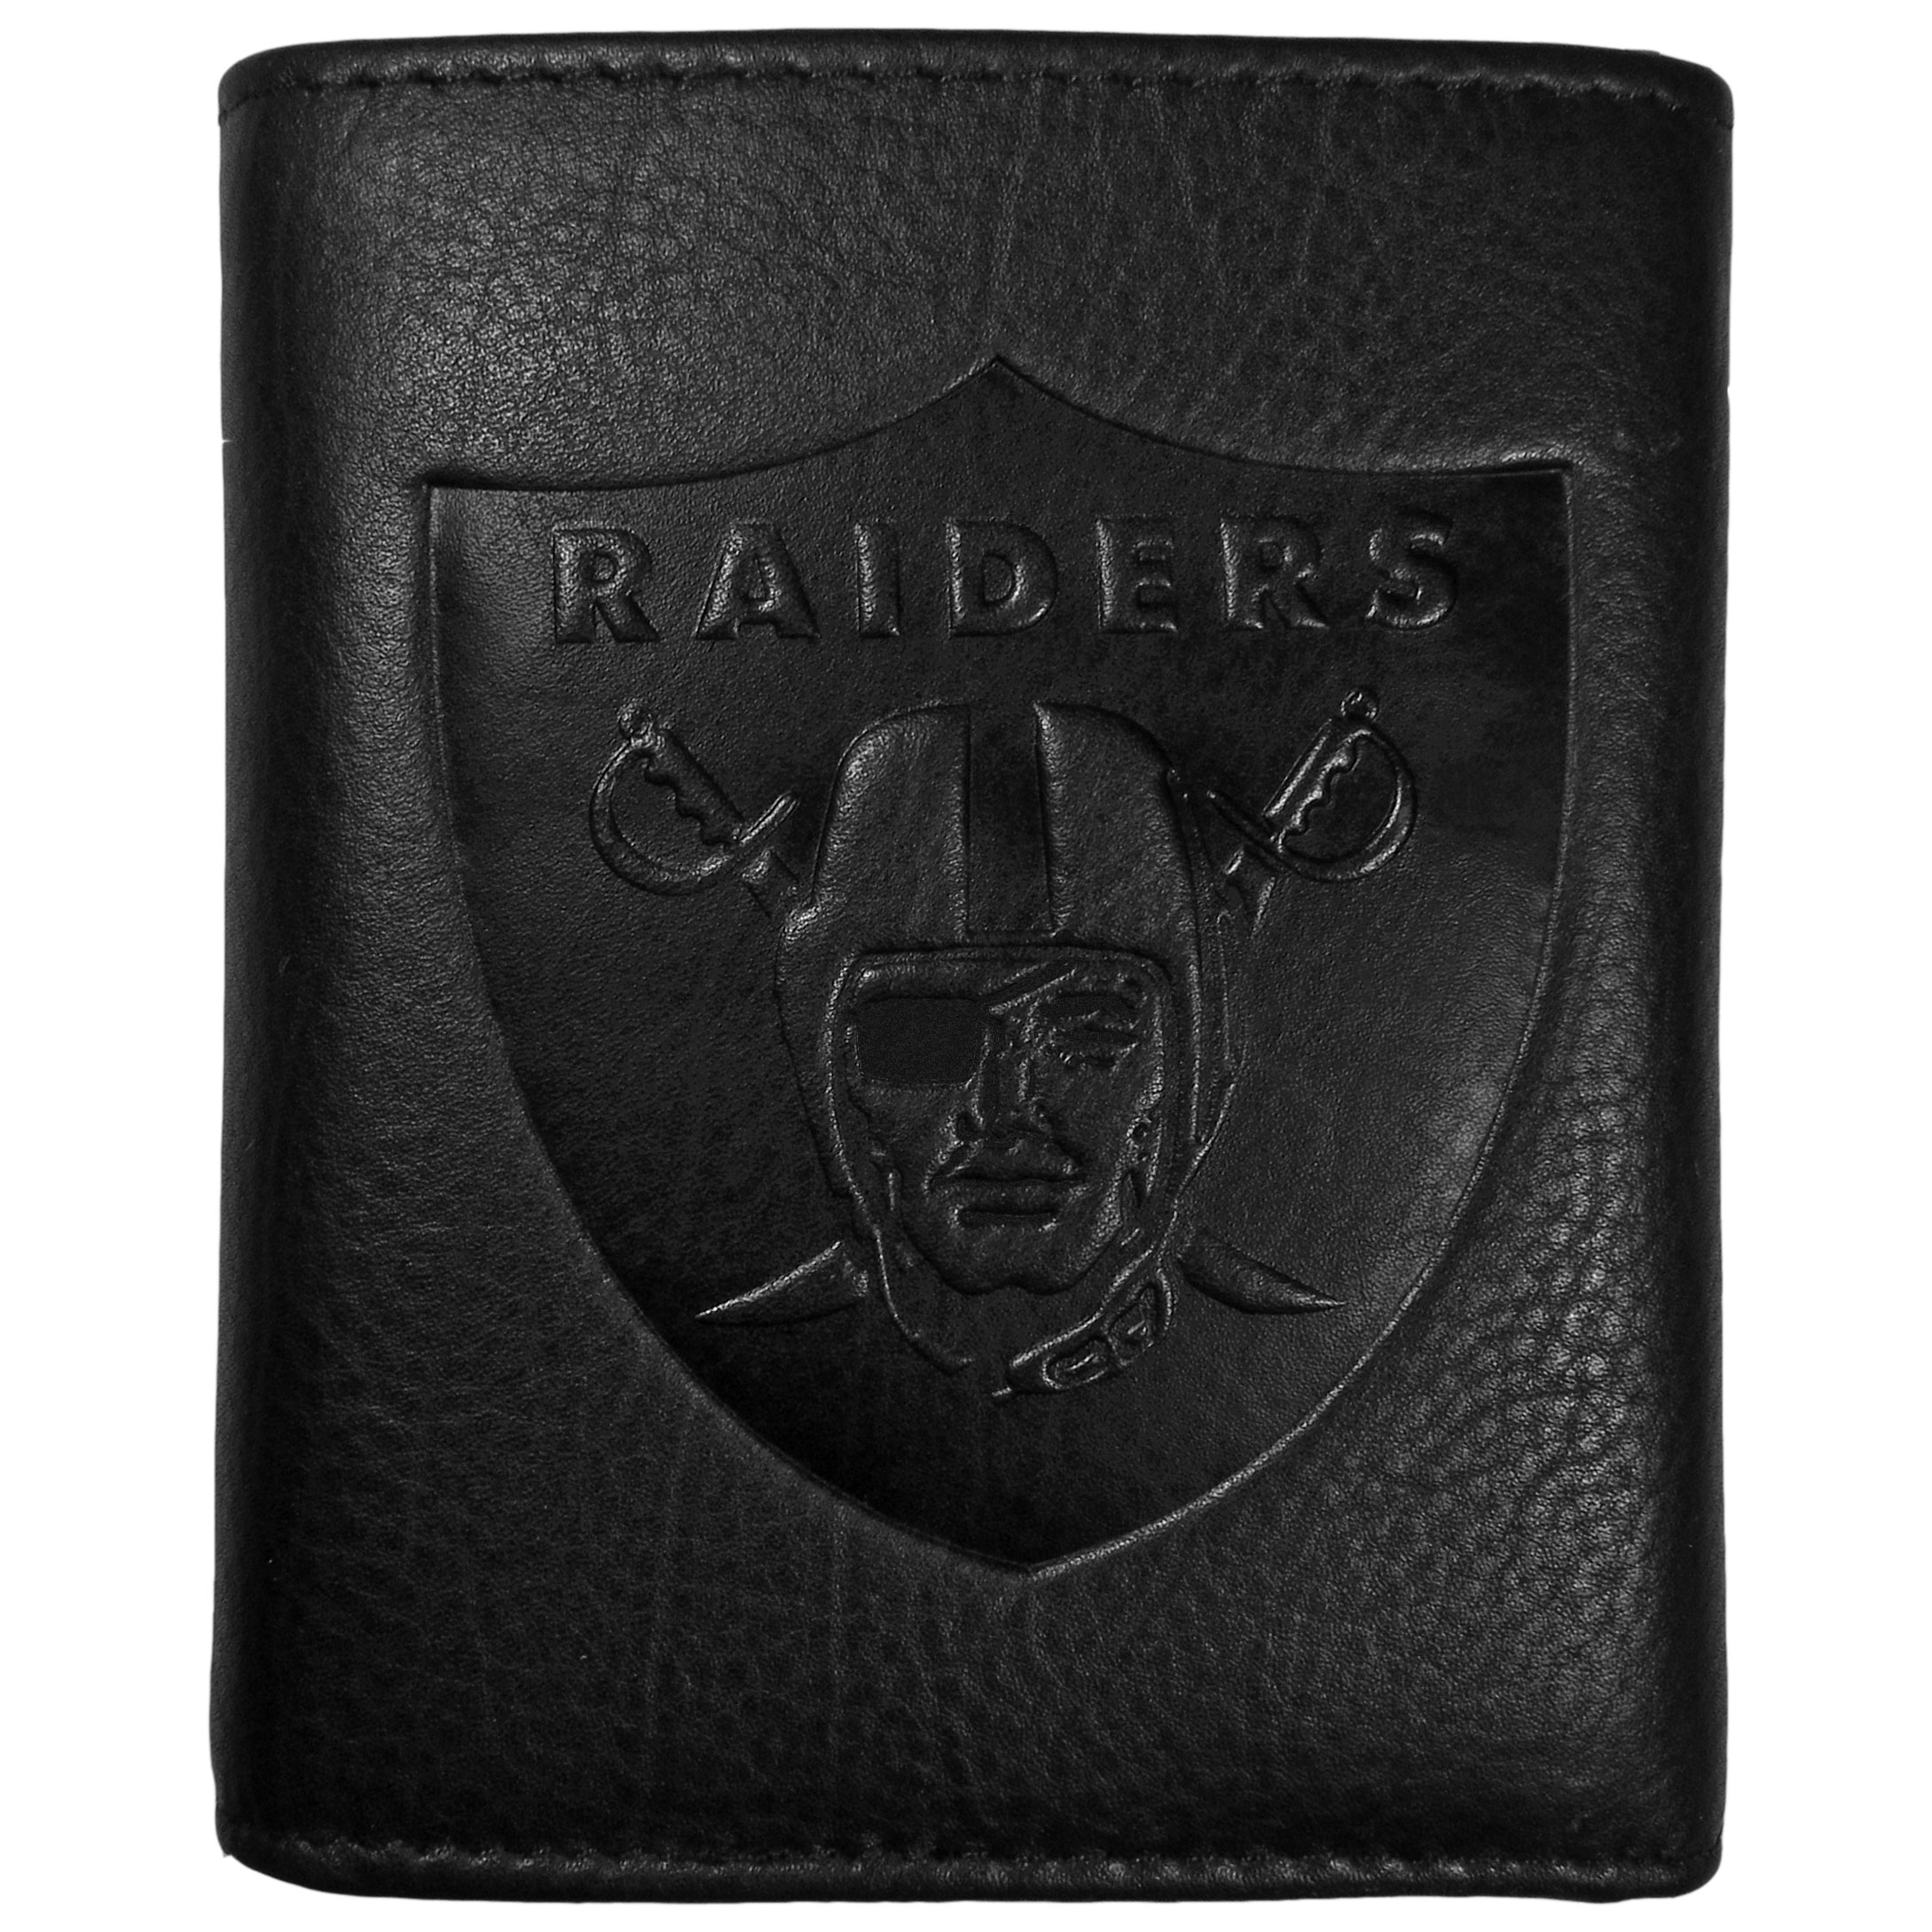 Oakland Raiders Embossed Leather Tri-fold Wallet - This stylish leather wallet is made of high quality leather with a supple feel and classic look. The front of the tri-fold style wallet has a deeply embossed Oakland Raiders logo. The billfold is packed with features that will allow to keep organized, lots of credit card slots, windowed ID slot, large pockets for bills and a removable sleeve with extra slots for even more storage. This is a must-have men's fashion accessory that would make any fan very proud to own.